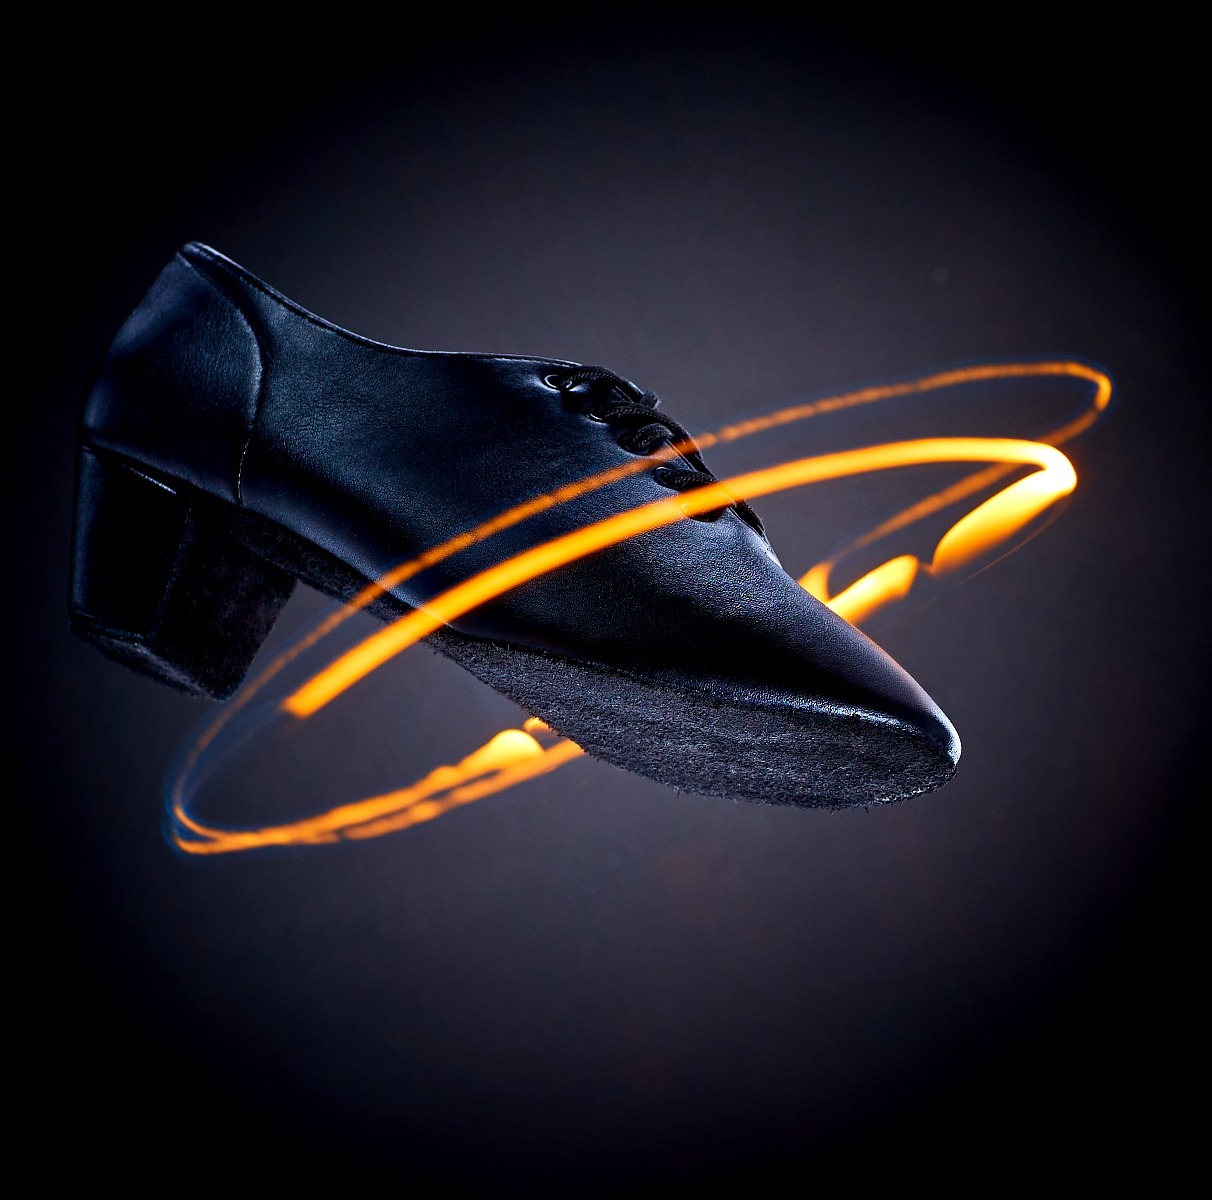 Dance Shoe with real fire effect for Burn the floor campaign